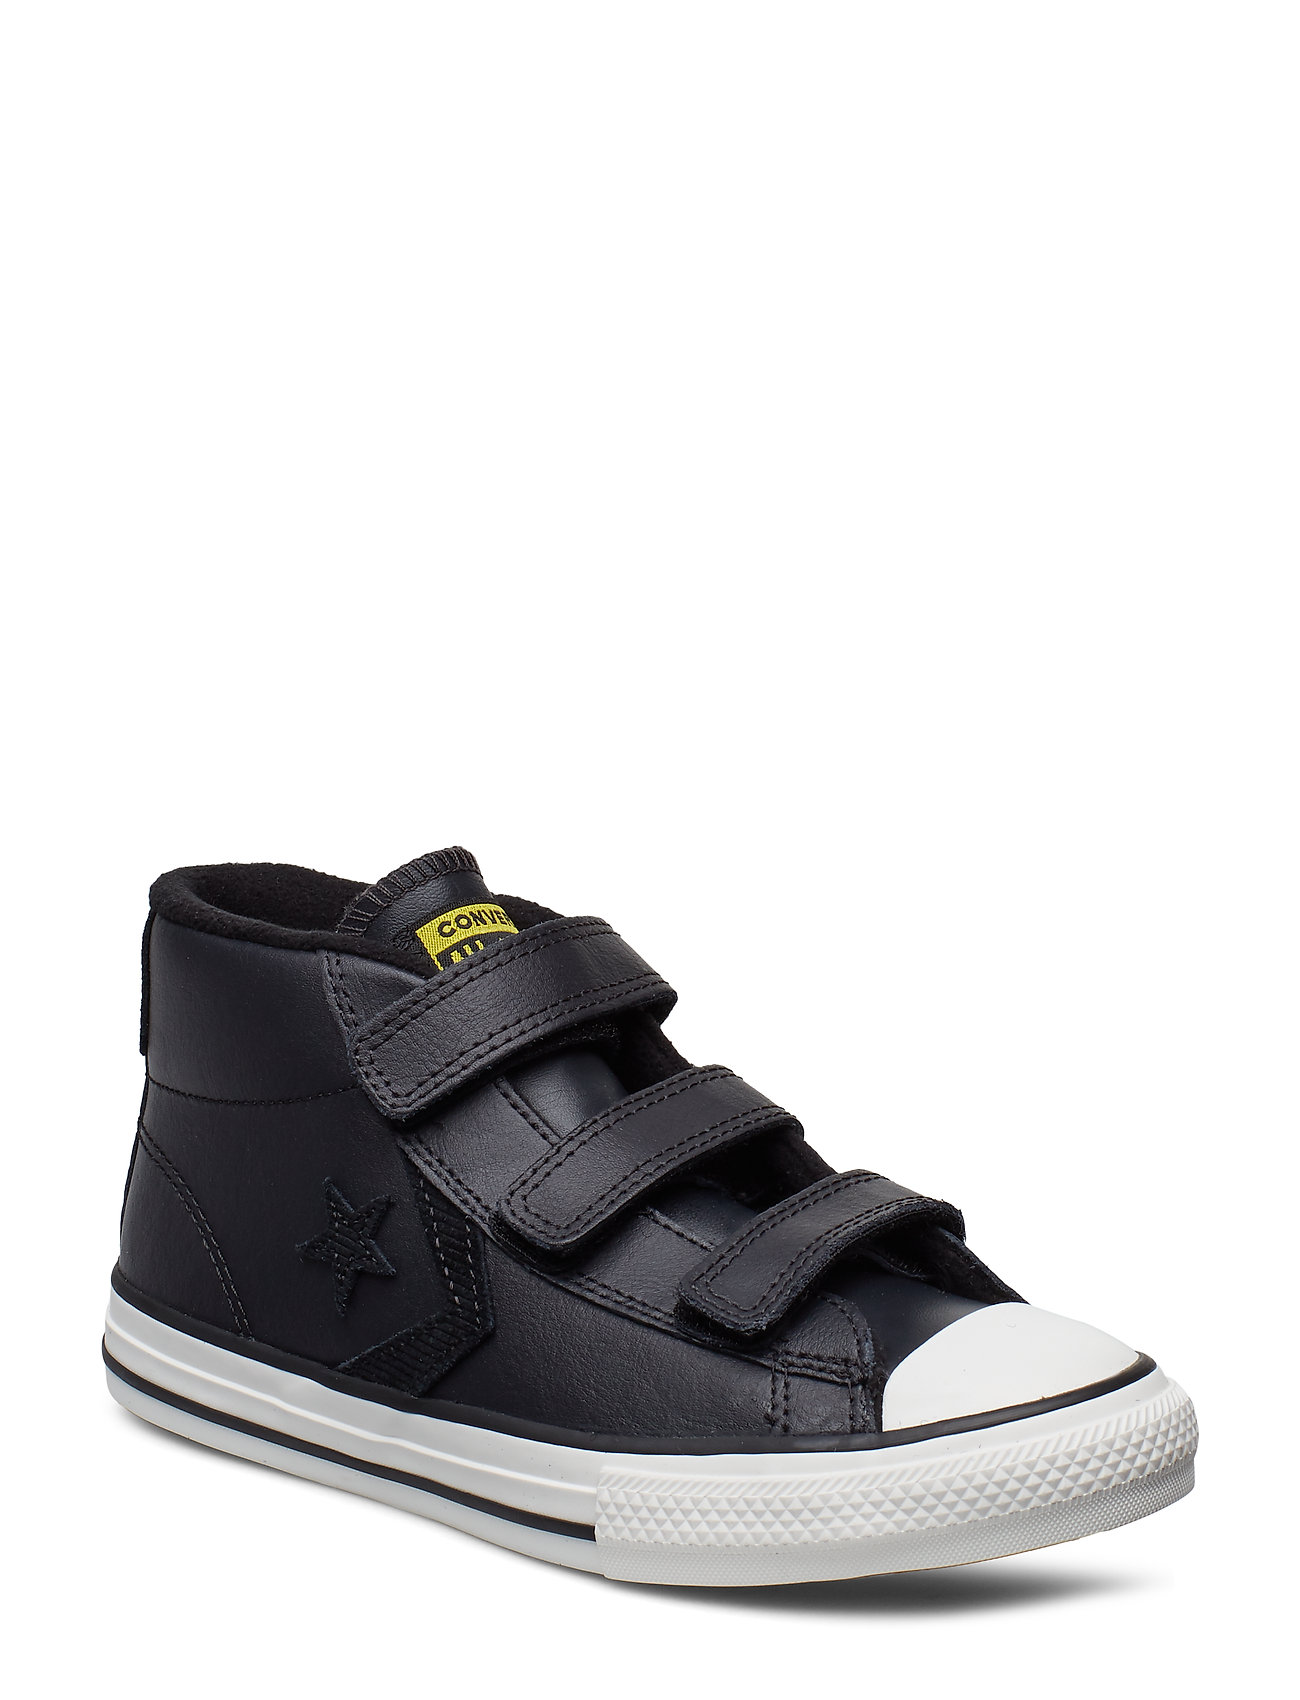 Converse STAR PLAYER 3V MID - ALMOST BLACK/BLACK/VIVID SULFUR